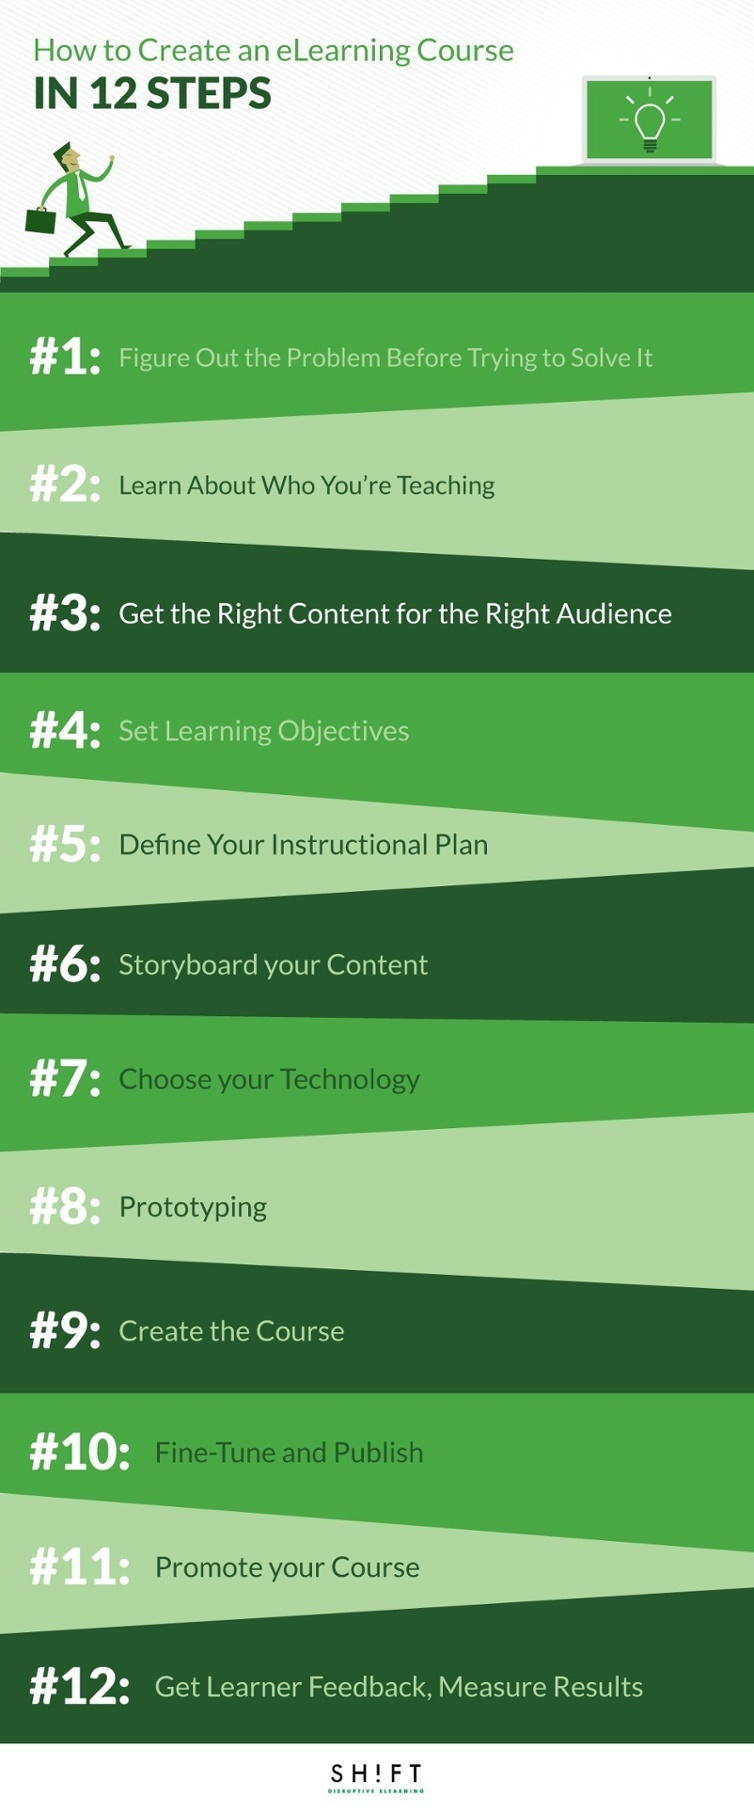 Create an eLearning Course in 12 Steps Infographic e